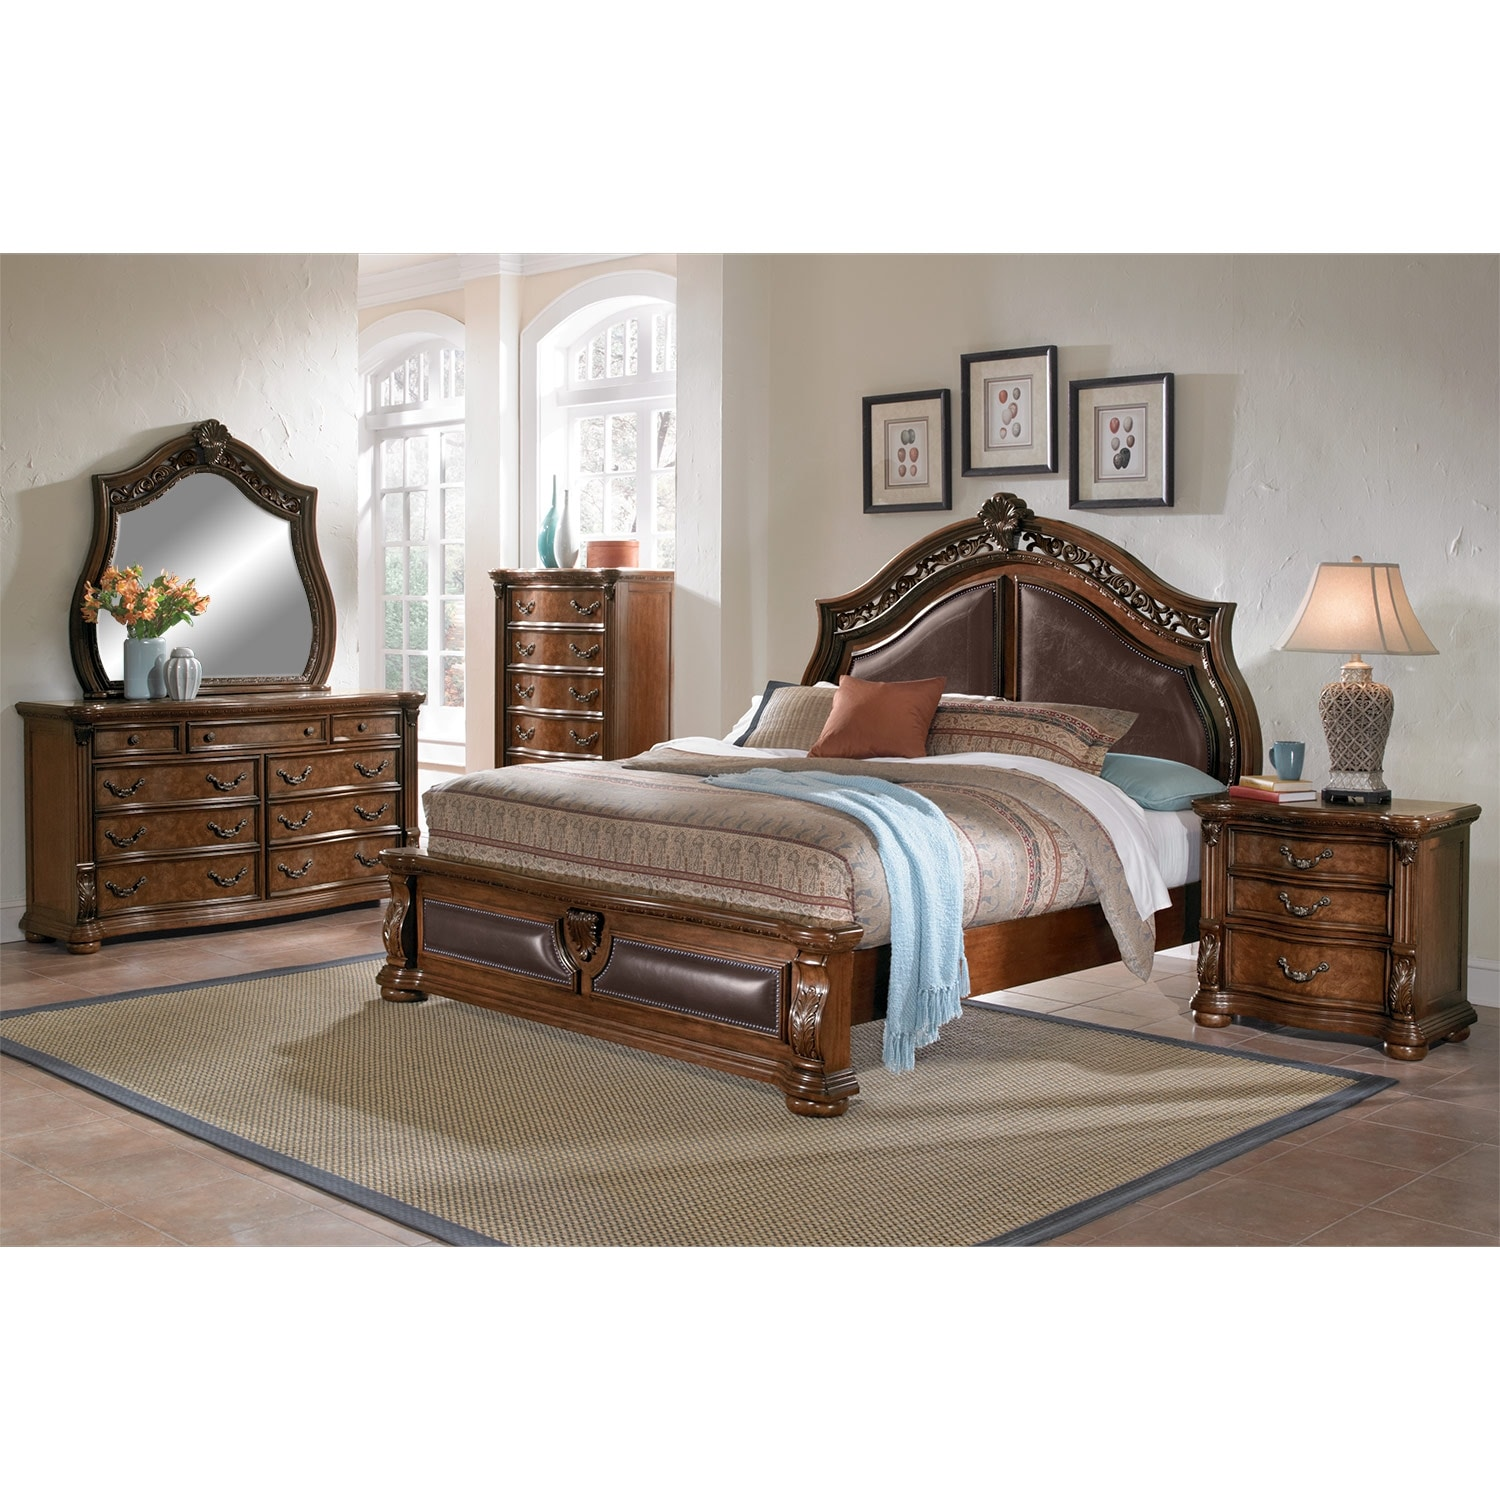 Morocco king bed pecan american signature furniture for American furniture king bedroom sets